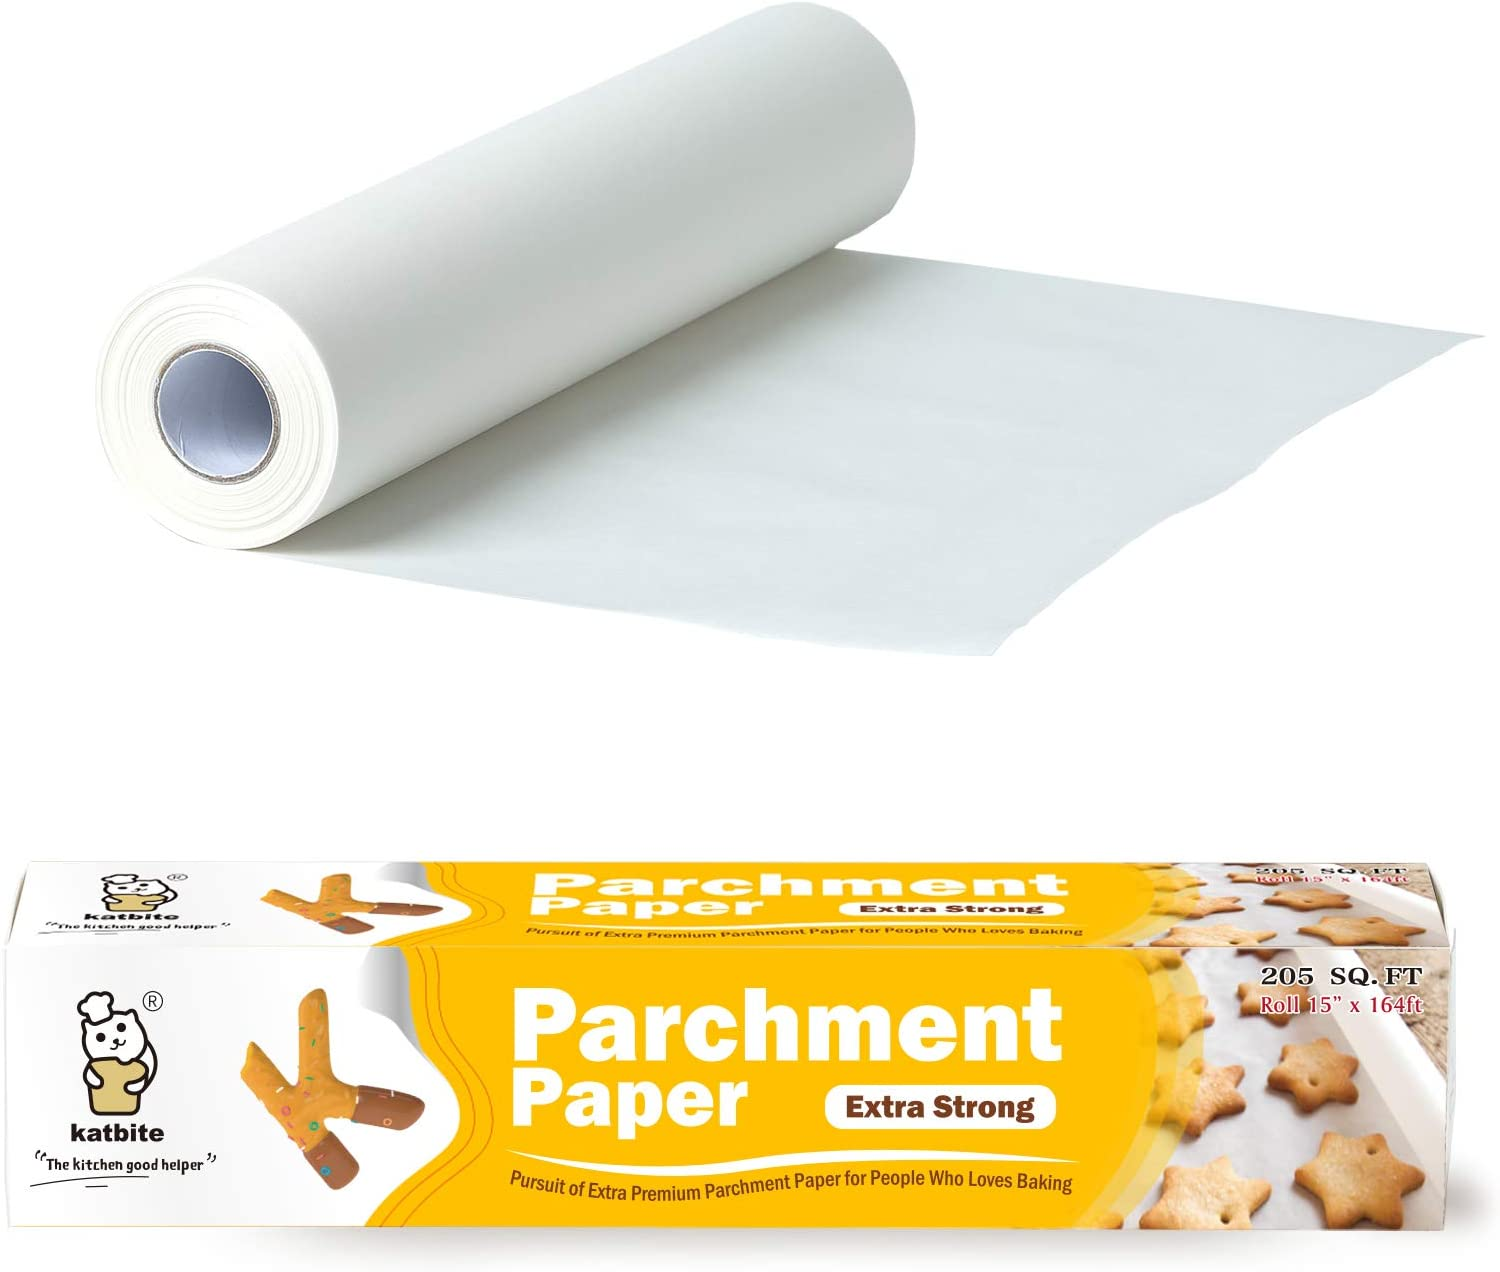 Katbite 205 SQ FT Heavy Duty Parchment Paper Roll -15 in x 164 ft Baking Paper For Cooking, Air Fryer